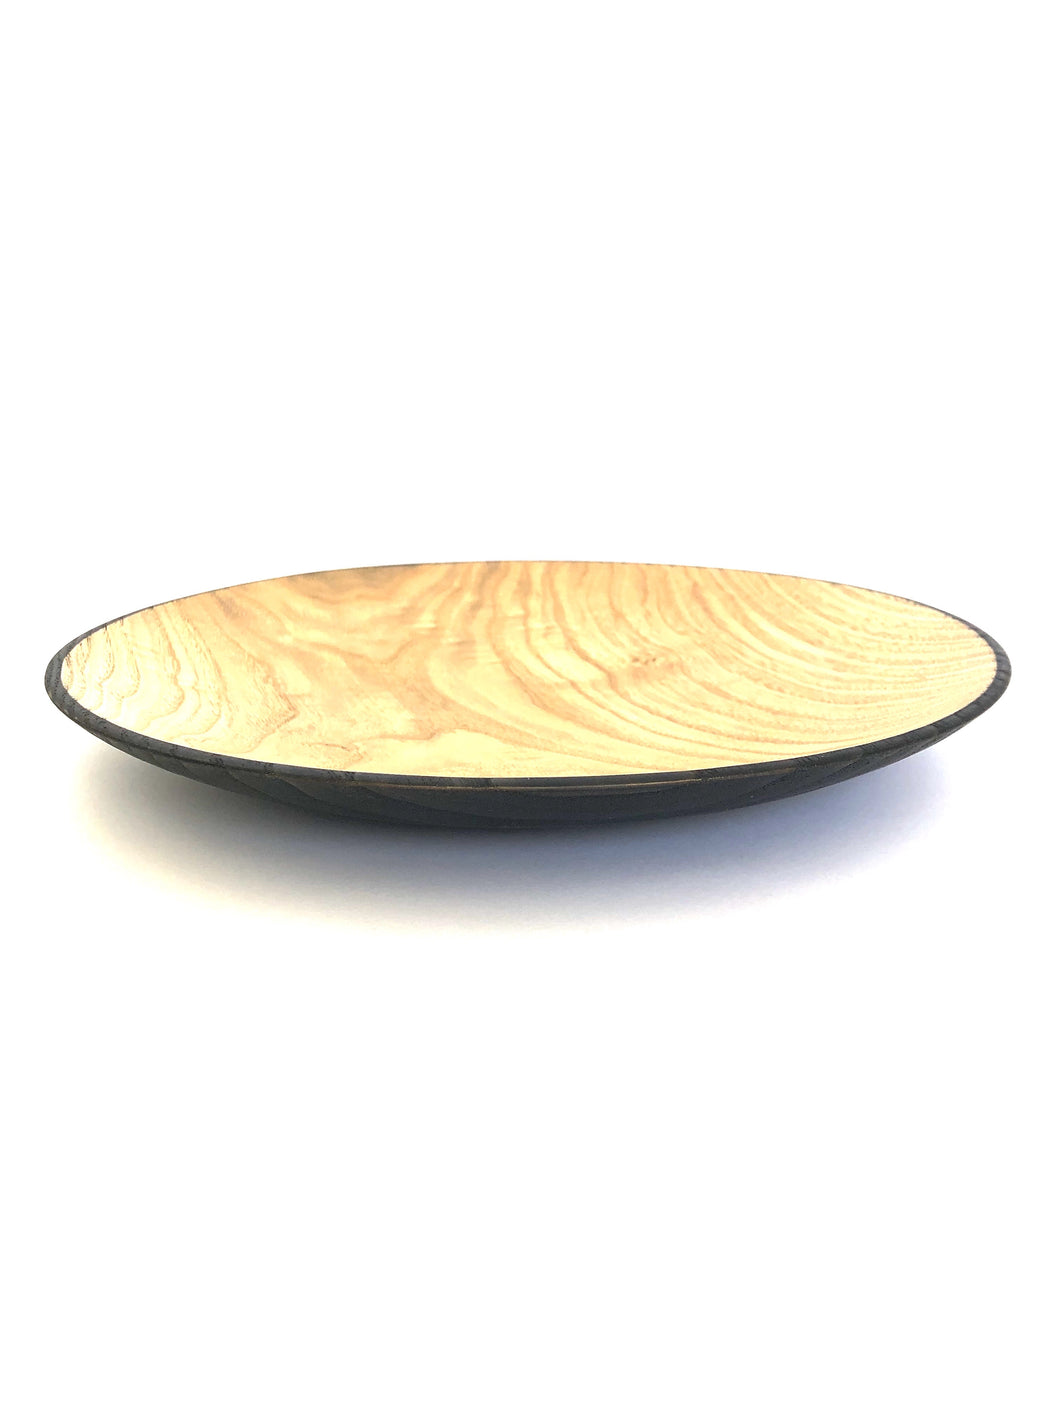 Japanese Handcrafted Wooden Iron Dyed Dual Coloured Plate Chestnut -  栗の外側鉄染め大皿 28cm